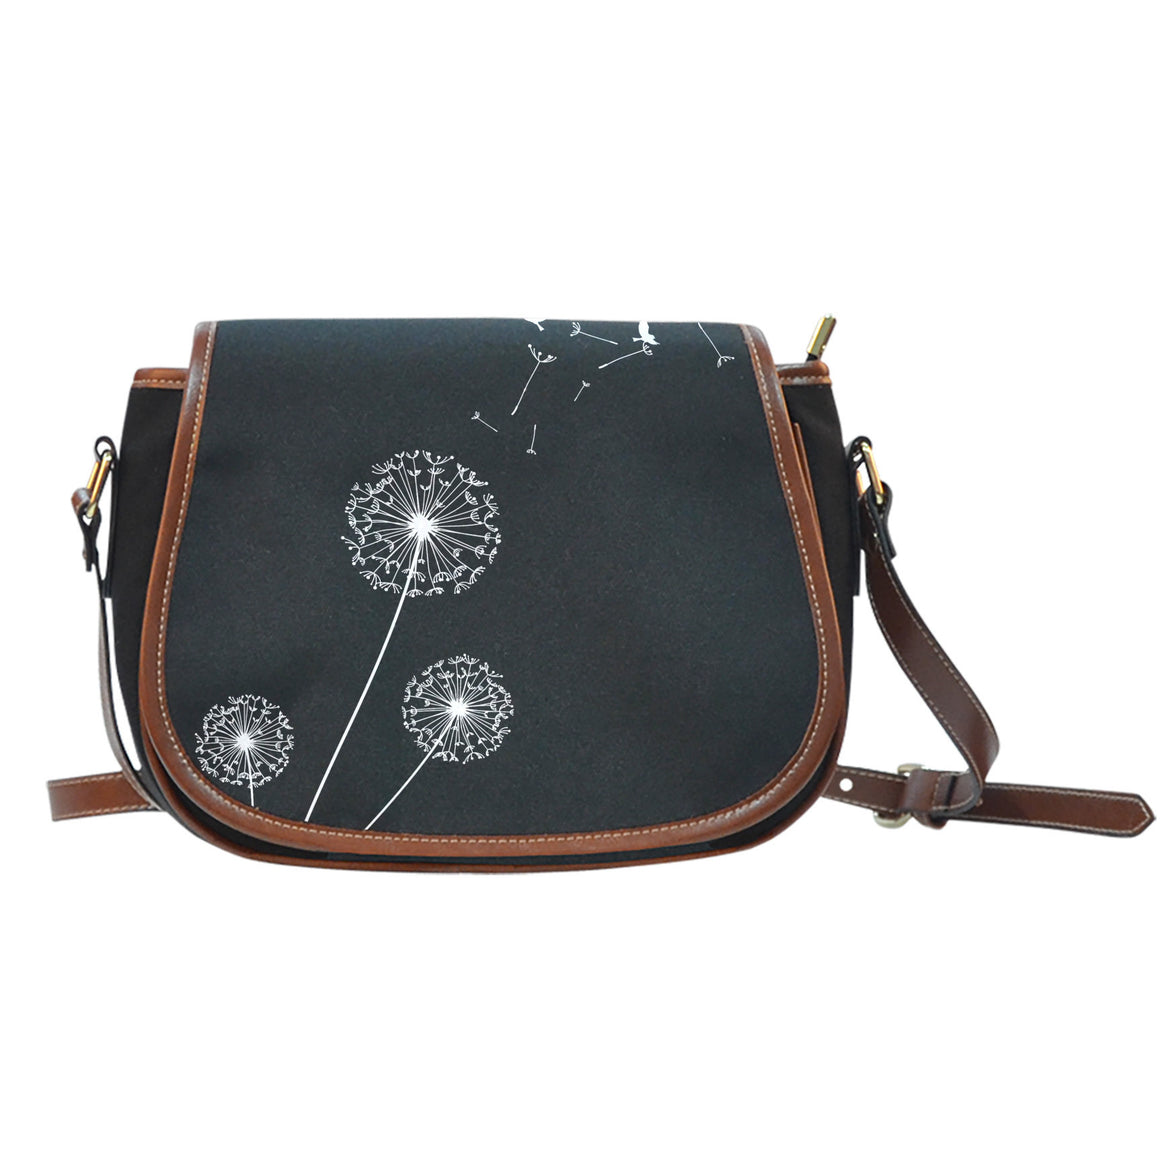 Live Free Black Saddle Bag